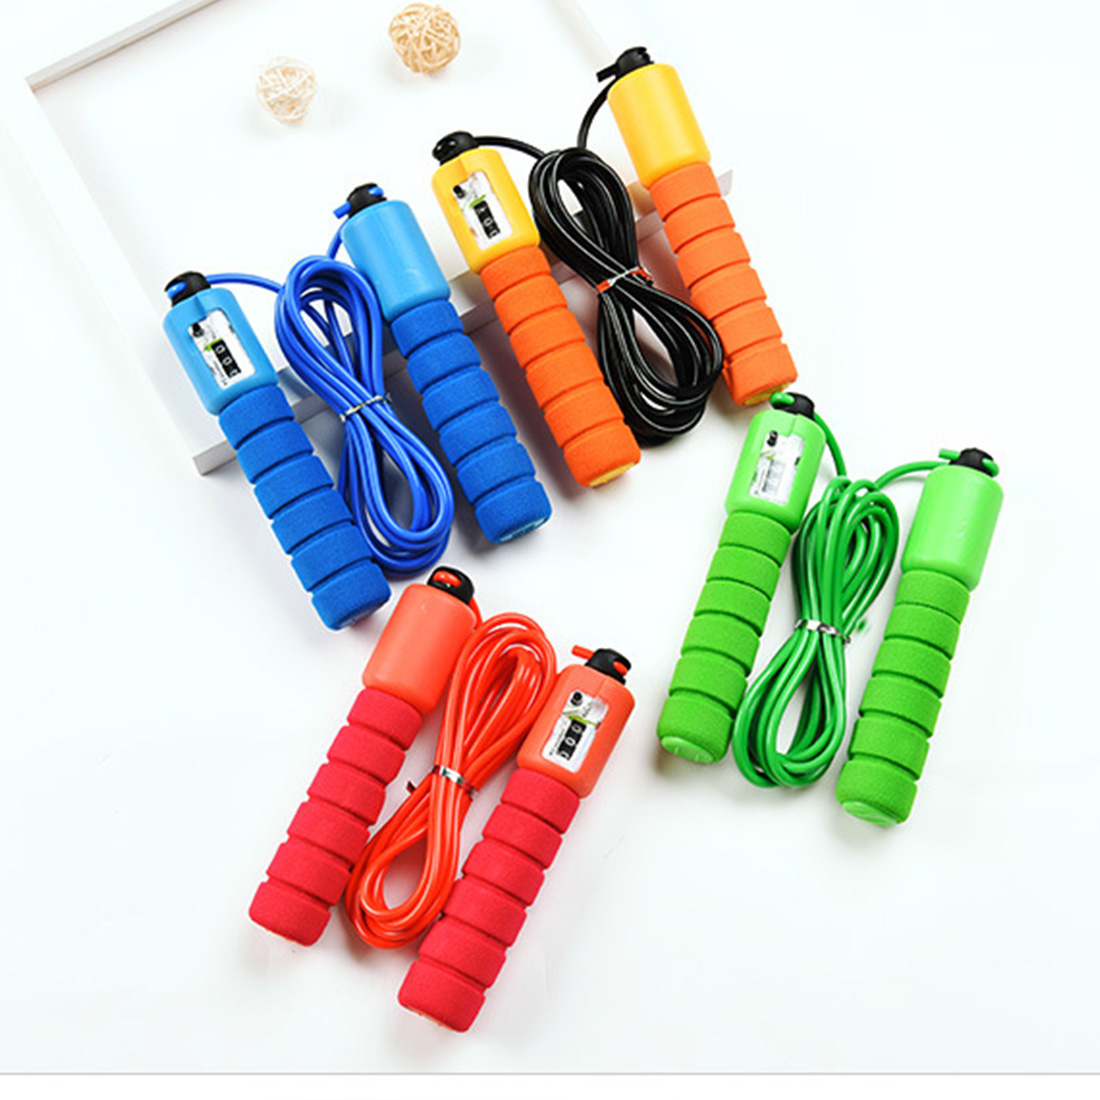 Hot Sell New Jump <font><b>Ropes</b></font> <font><b>With</b></font> <font><b>Counter</b></font> Sports Fitness Adjustable Fast Speed Counting Jump Skip <font><b>Rope</b></font> <font><b>Skipping</b></font> Wire <font><b>Calories</b></font> image